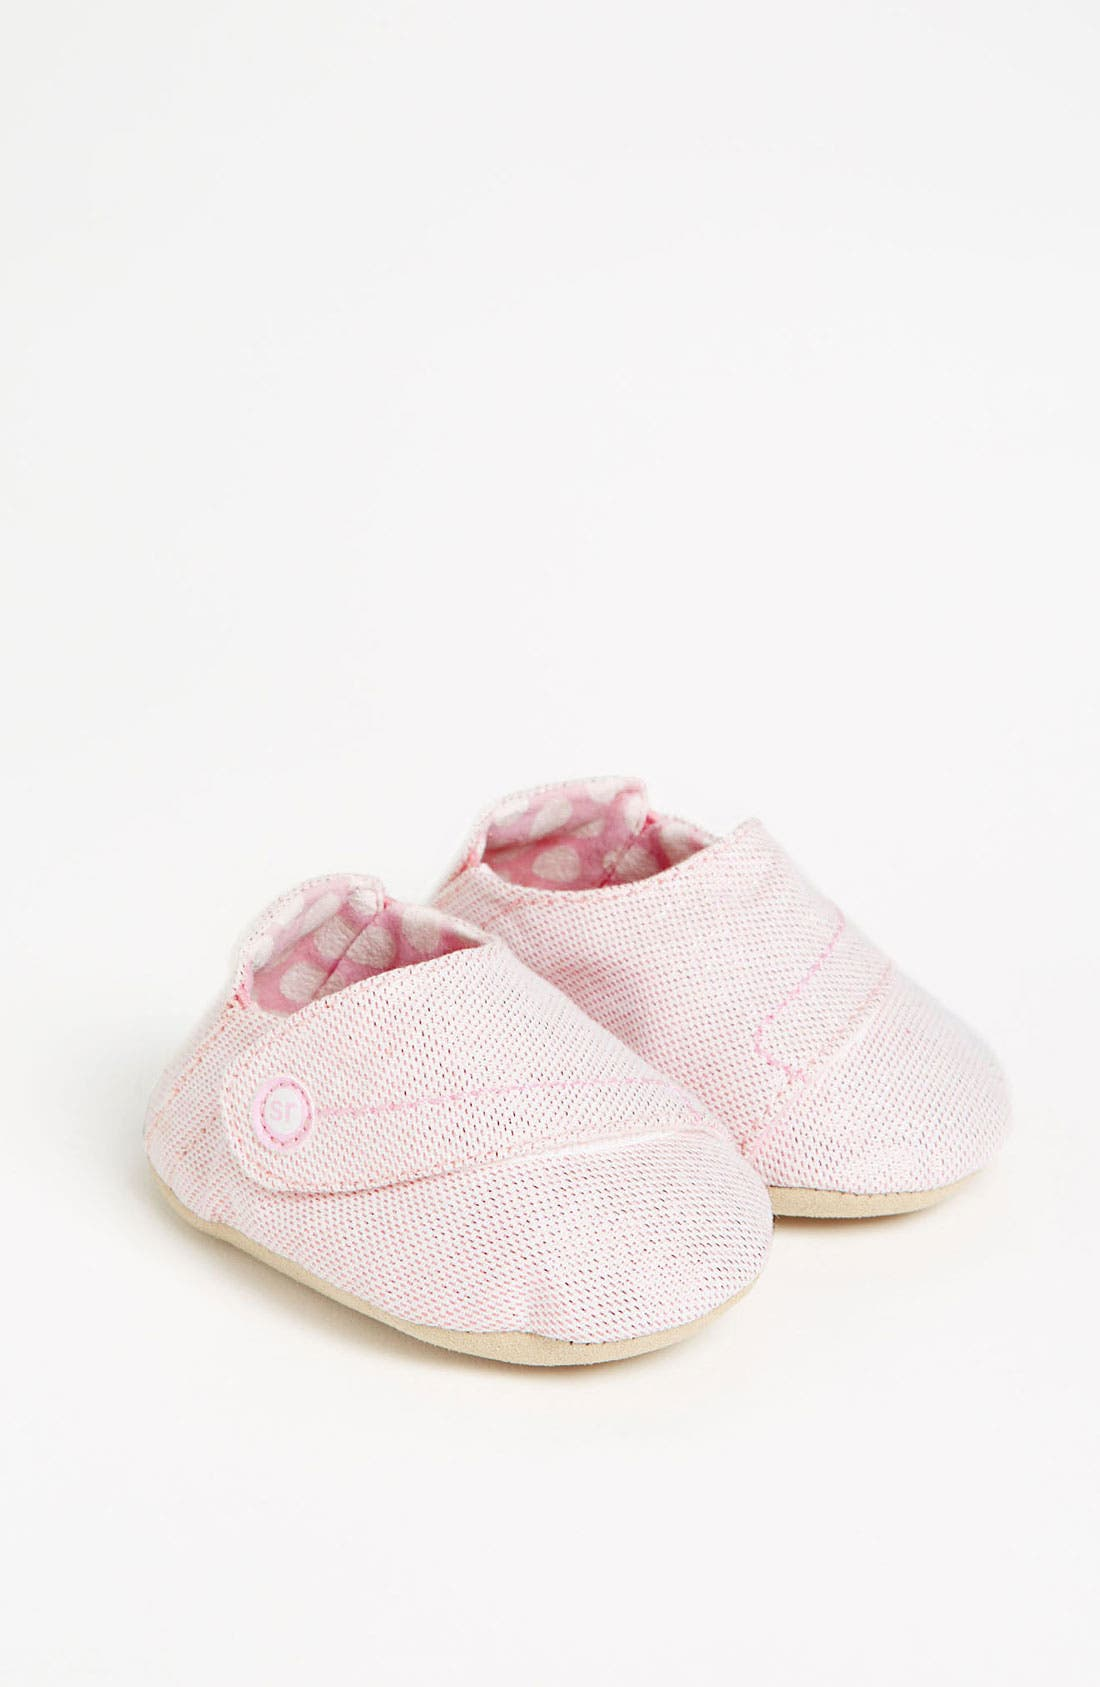 Main Image - Stride Rite 'Pink Dream' Crib Shoe (Baby)